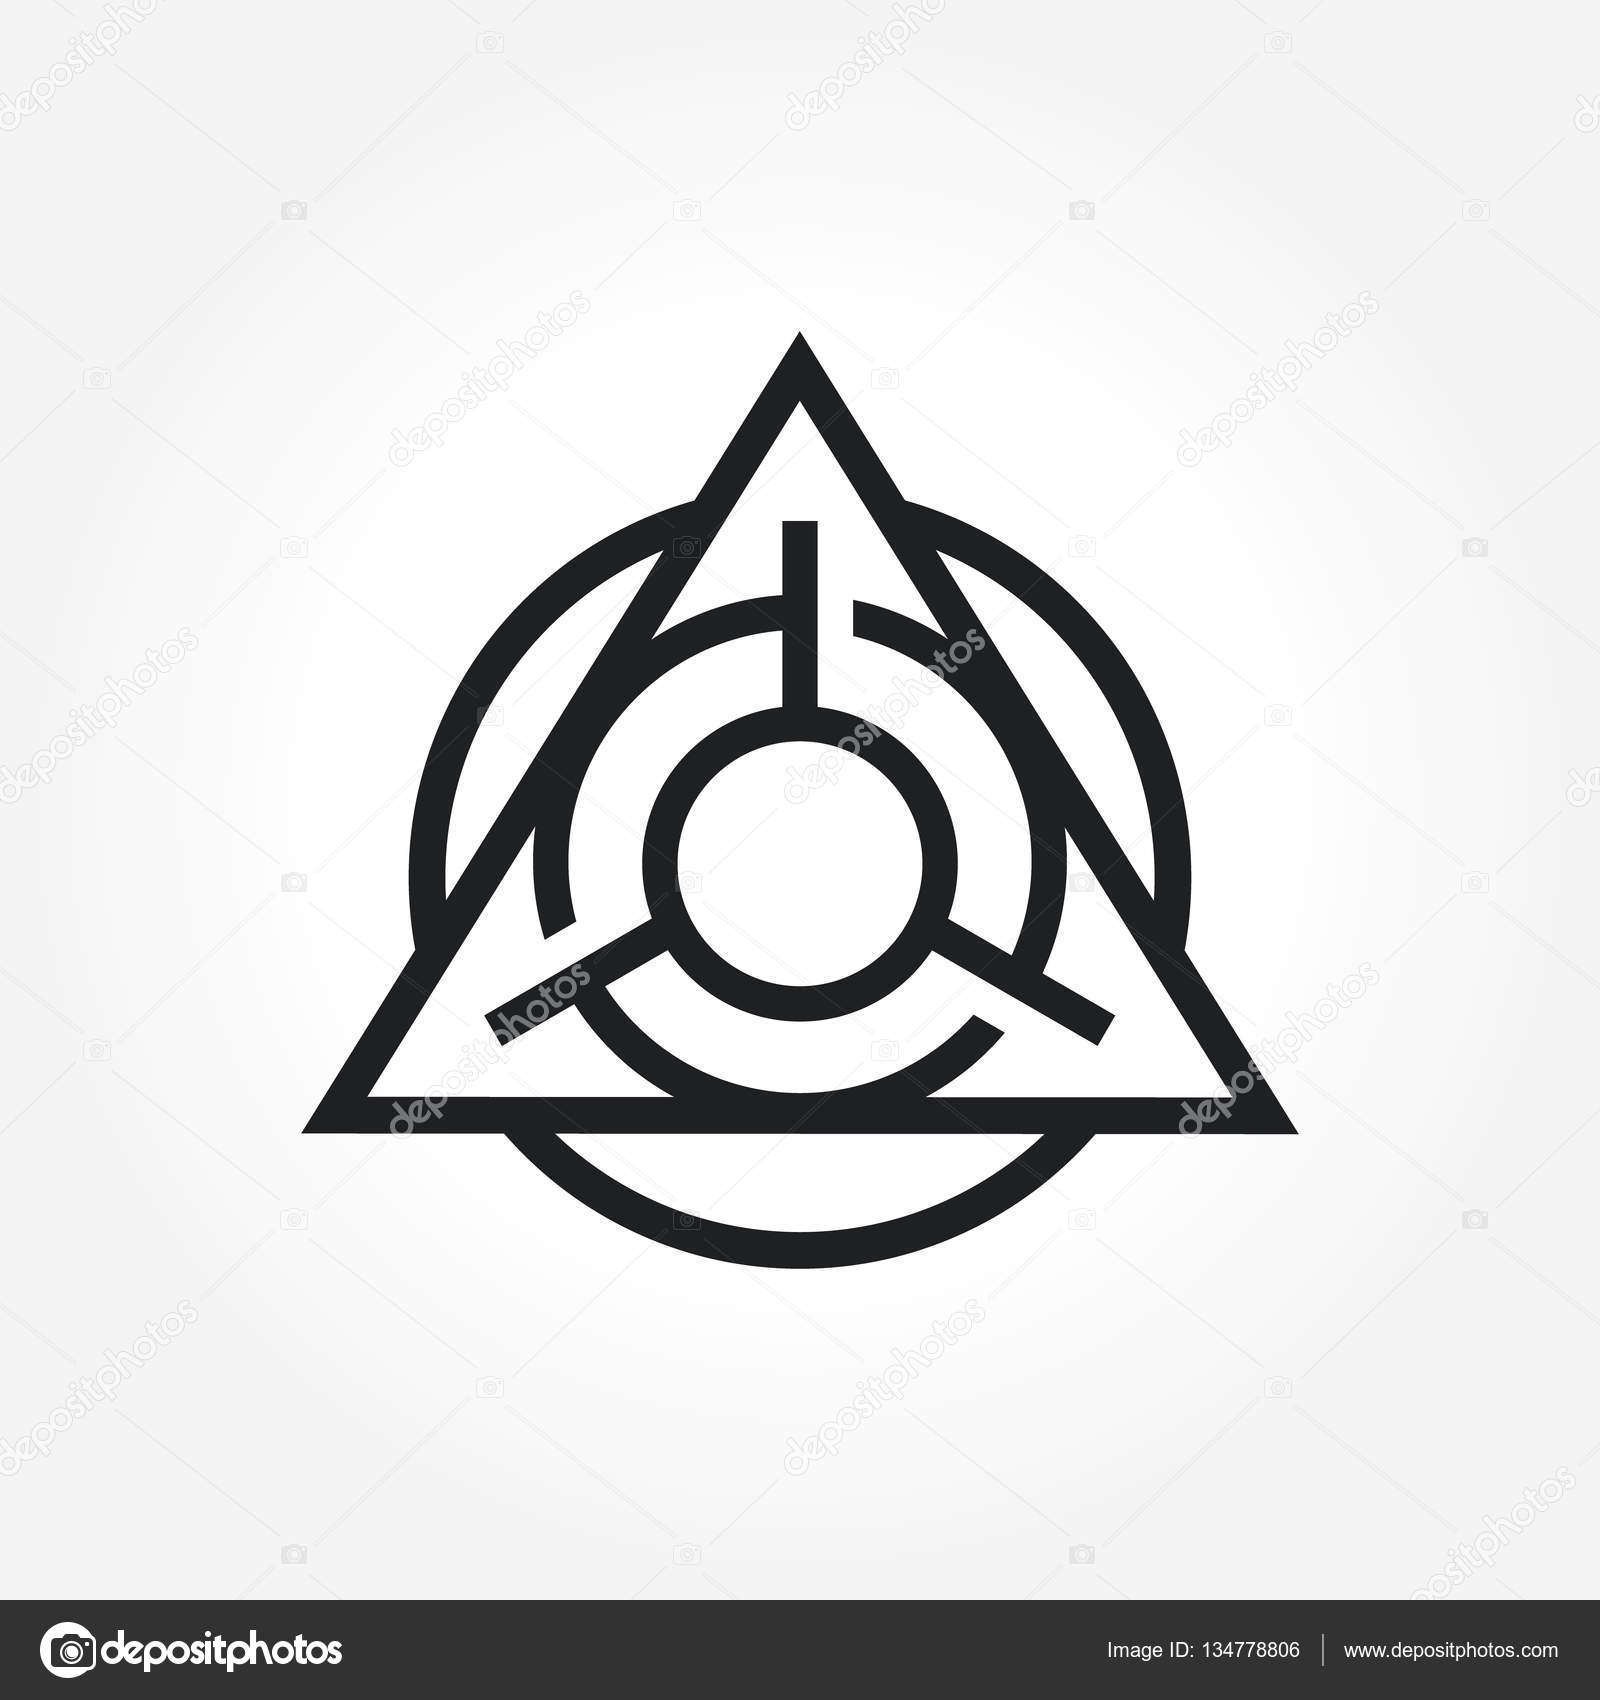 Triangle symbol design stock vector srirejeki 134778806 a simple triangle symbol for your business that quite unique so it can stand from the crowd easy to implement in future needs vector by srirejeki buycottarizona